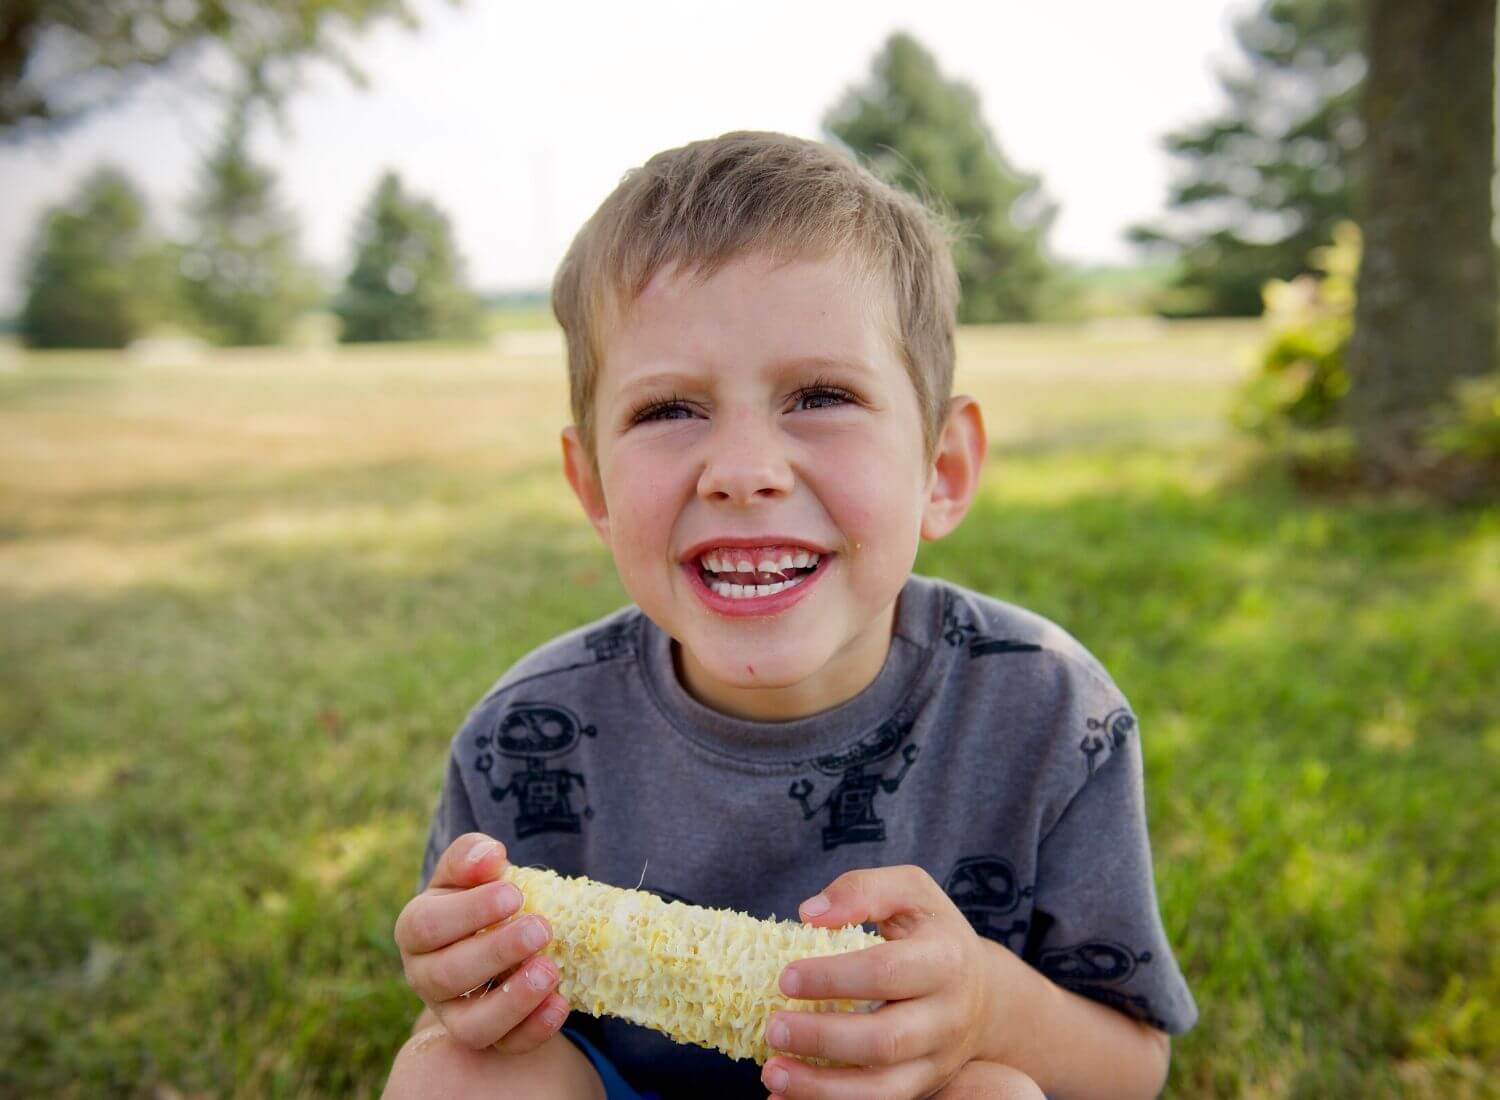 Top 15 Kid-Friendly Vegetables Your Child Will Love To Eat